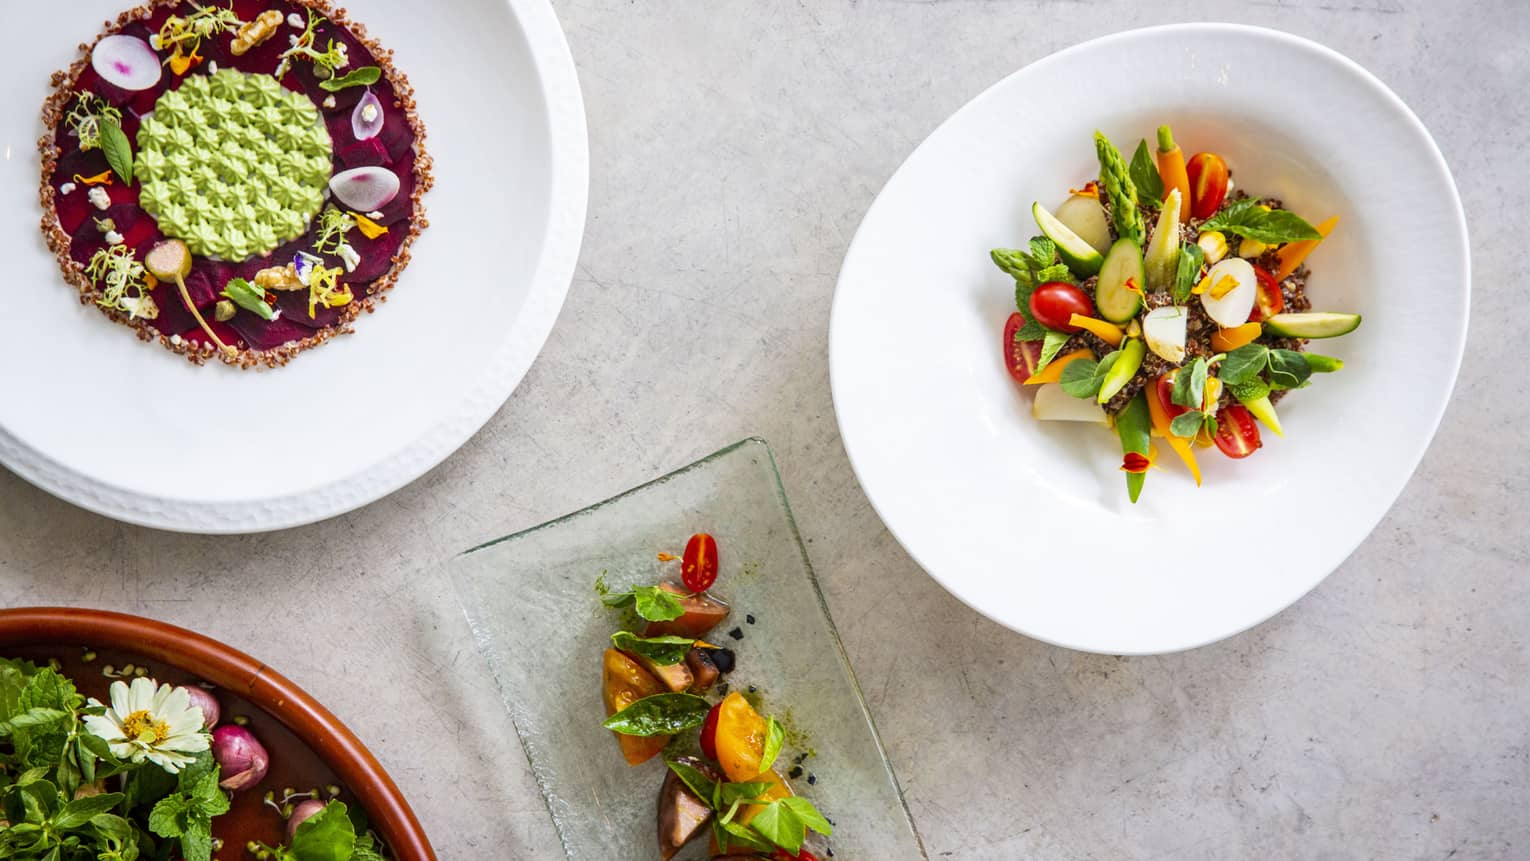 Four colourful dishes made of veggies and fruits from Cafe' Landaa